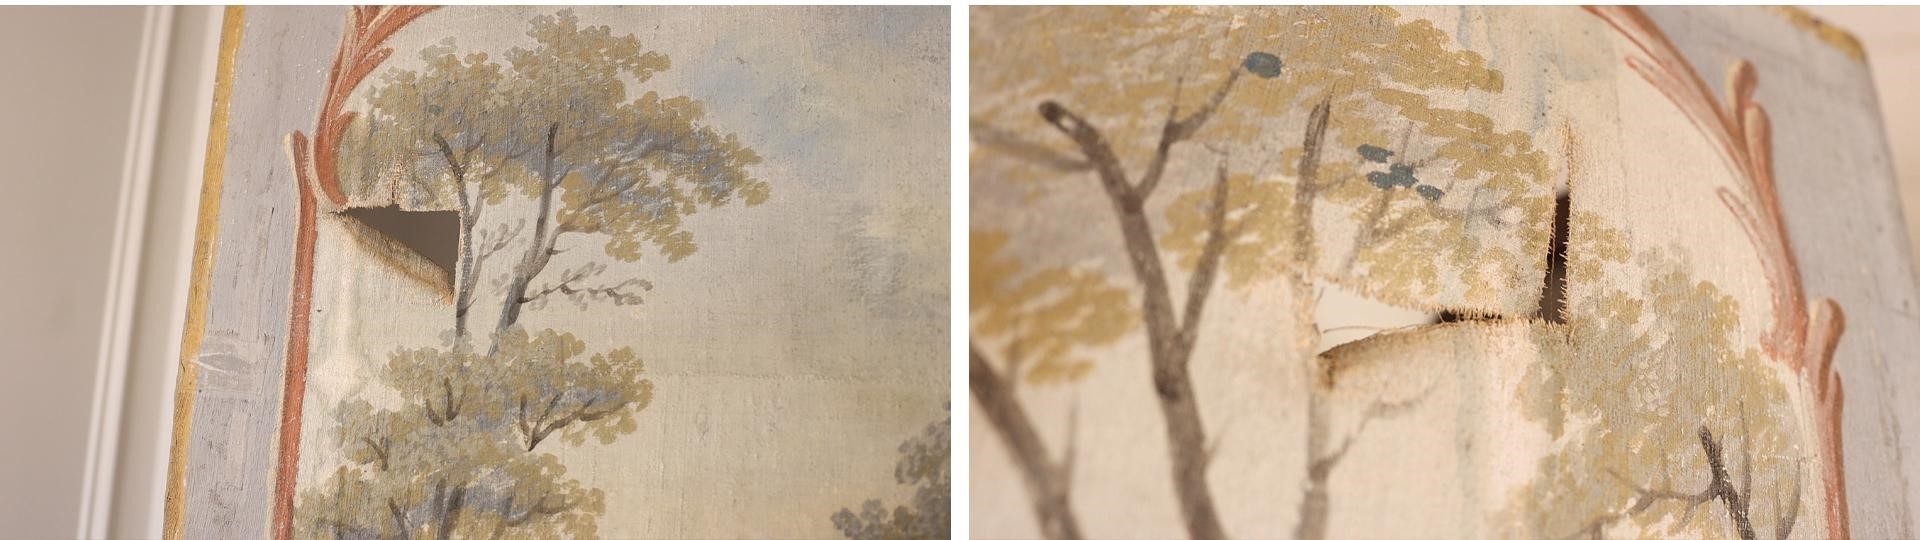 Don't let small tears and imperfections of antique decor and furniture stop you from purchasing. This Chinoiserie screen isn't perfect, but these imperfections add to the charm of the piece.